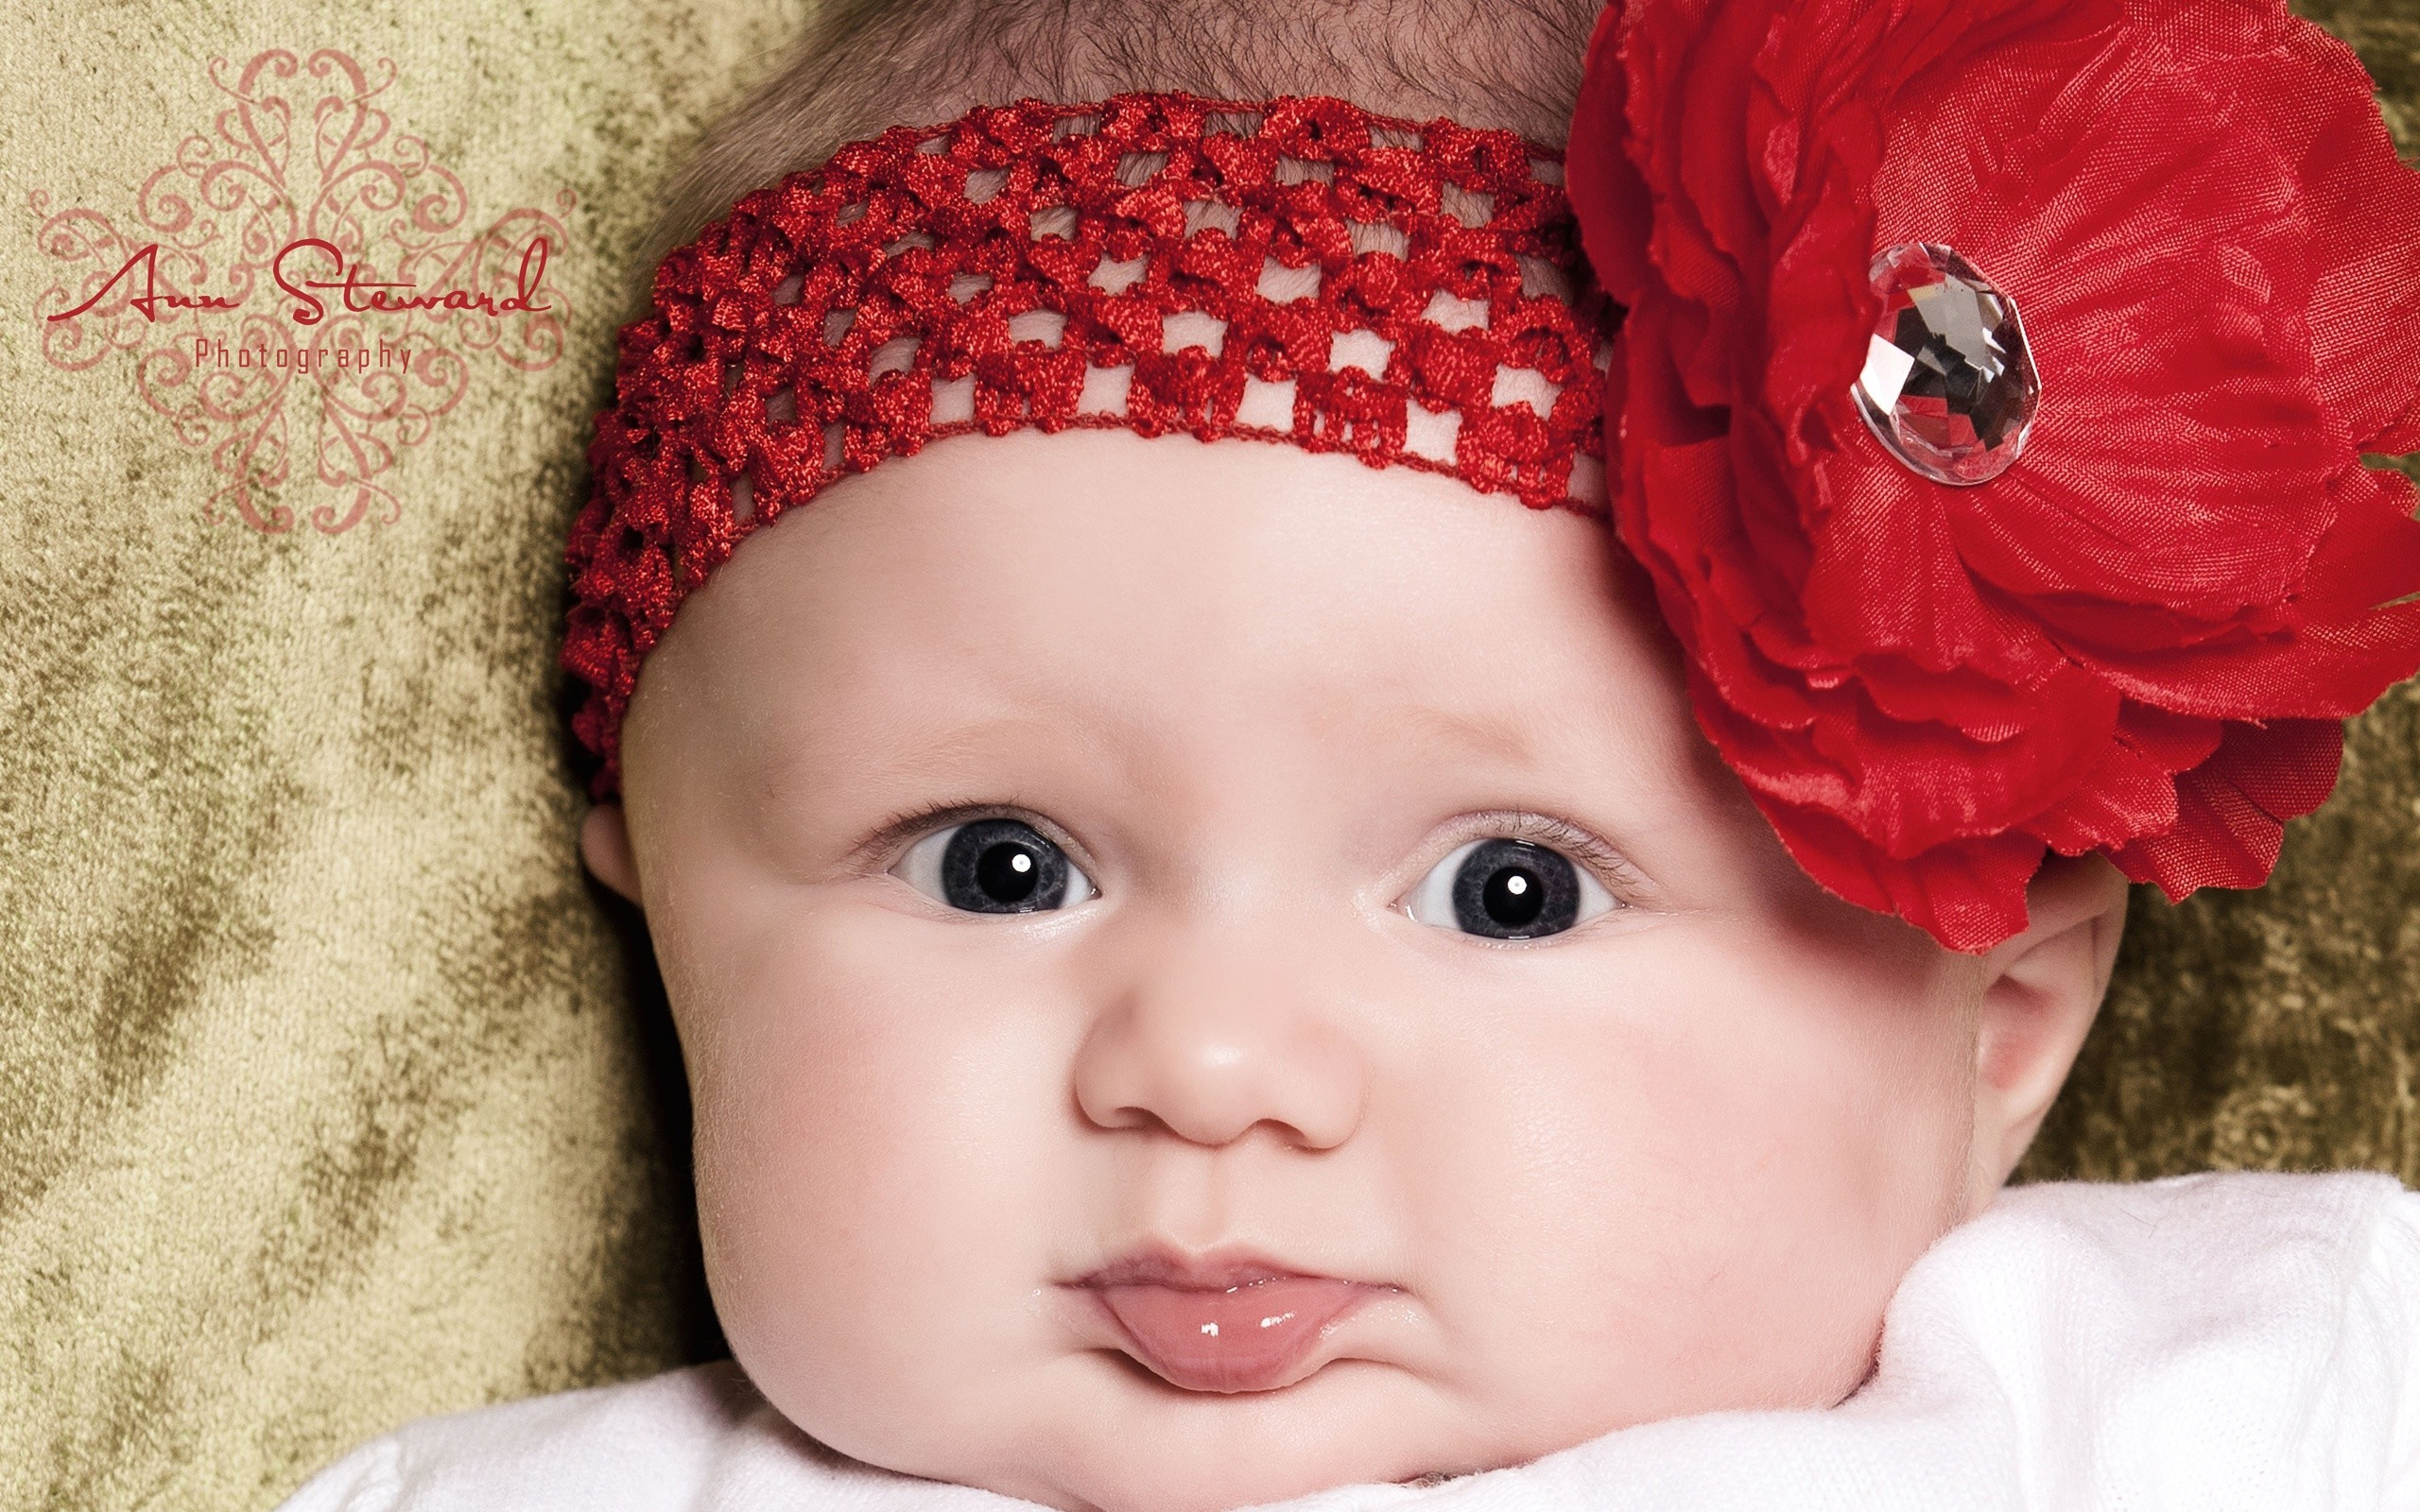 baby children HD Wallpaper